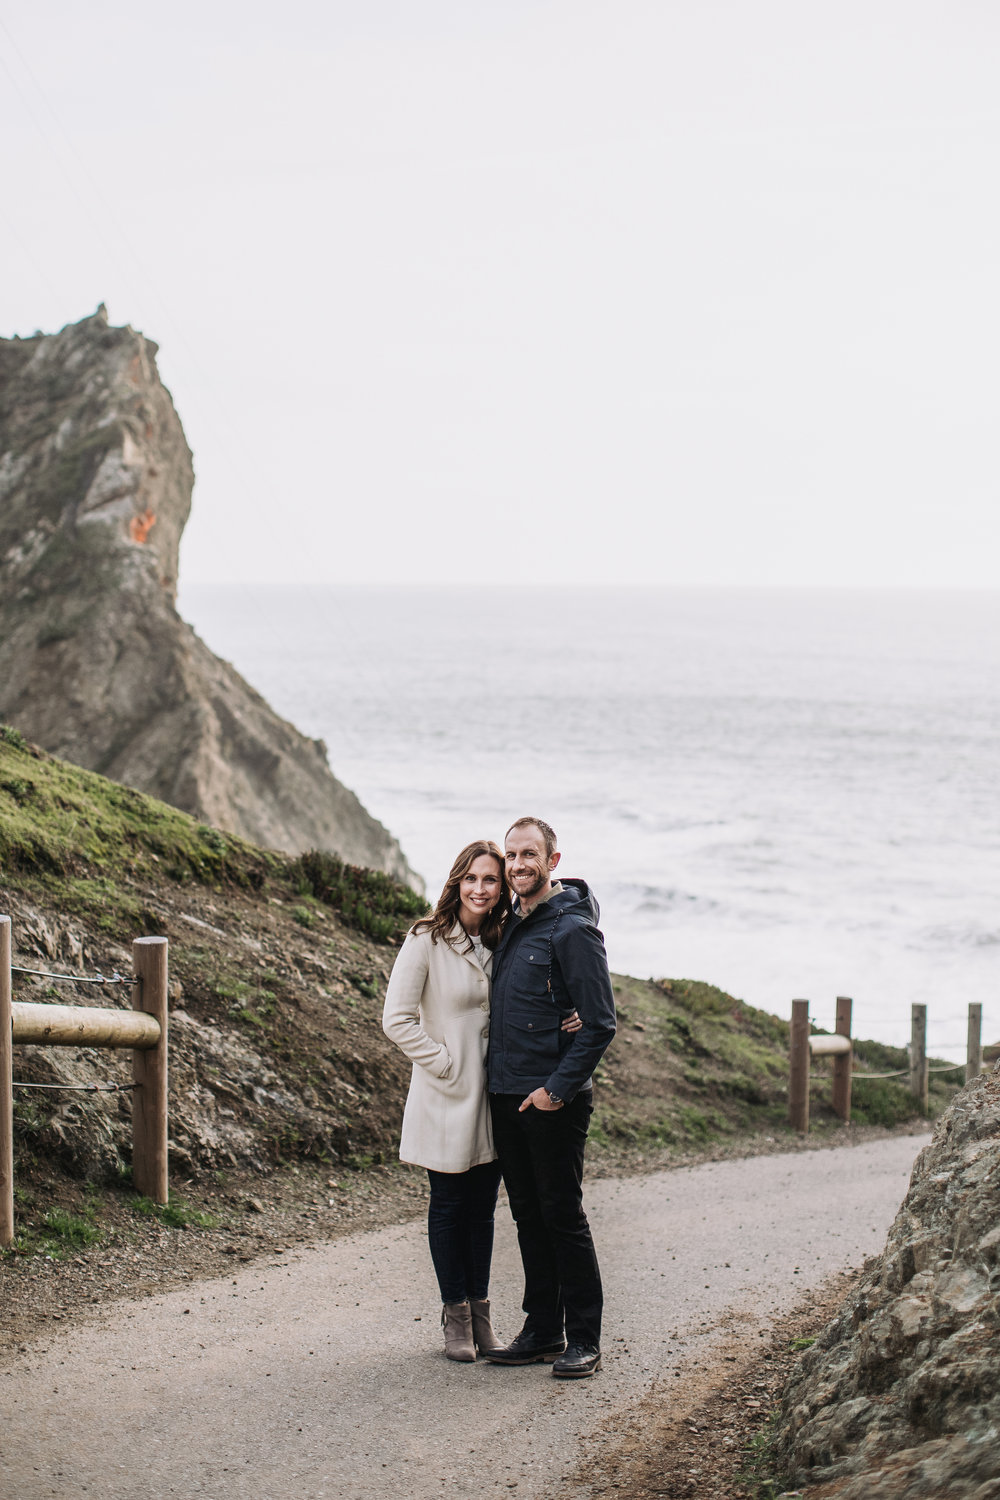 Kristen-Jimmy-Engagement-104.jpg